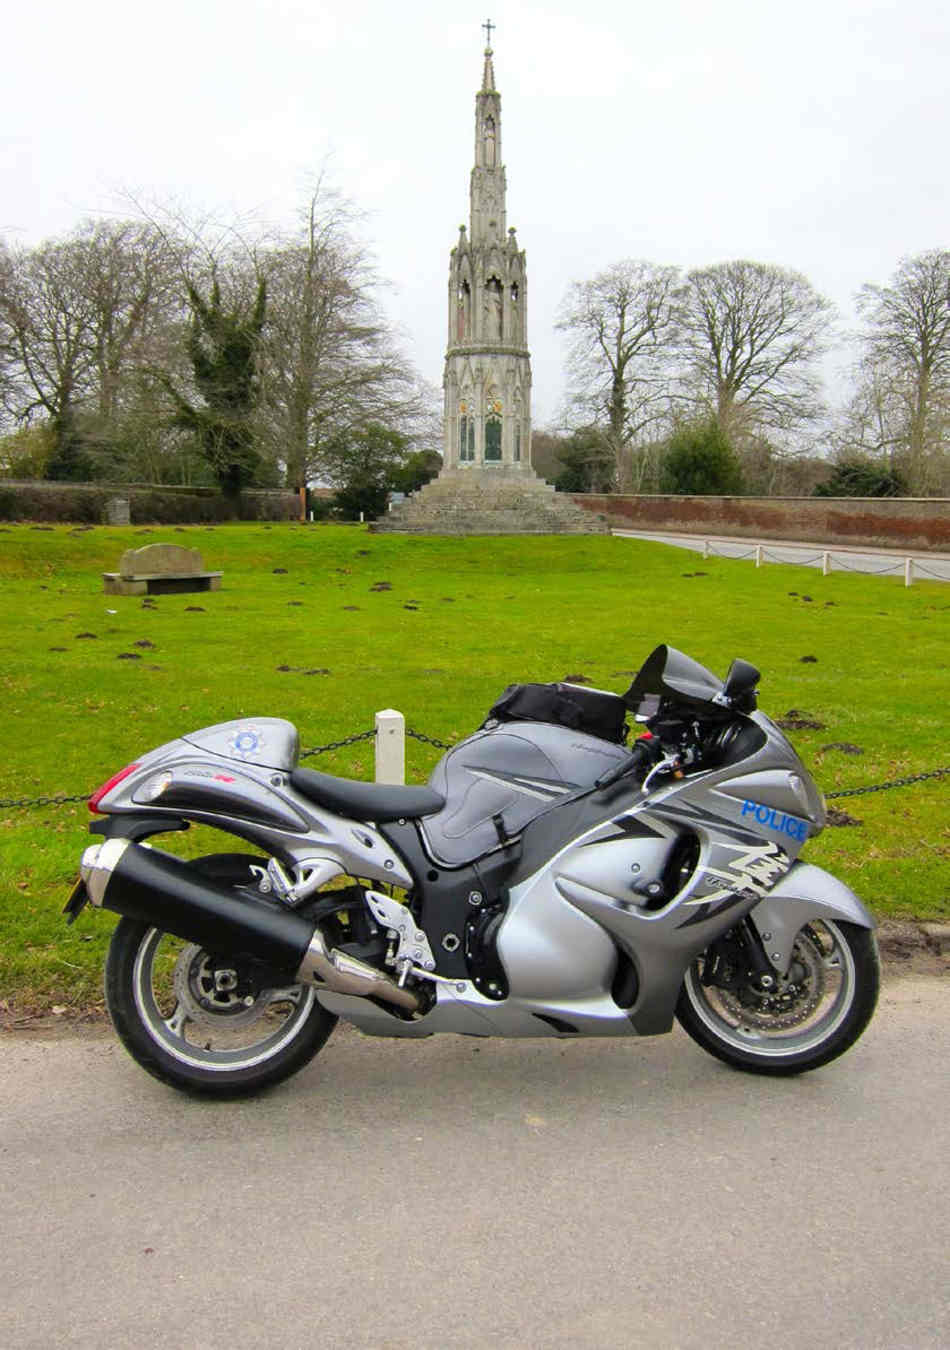 A Suzuki hayabusa, as described in the text, carrying police equipment, parked on a quiet road in front of a war memorial.